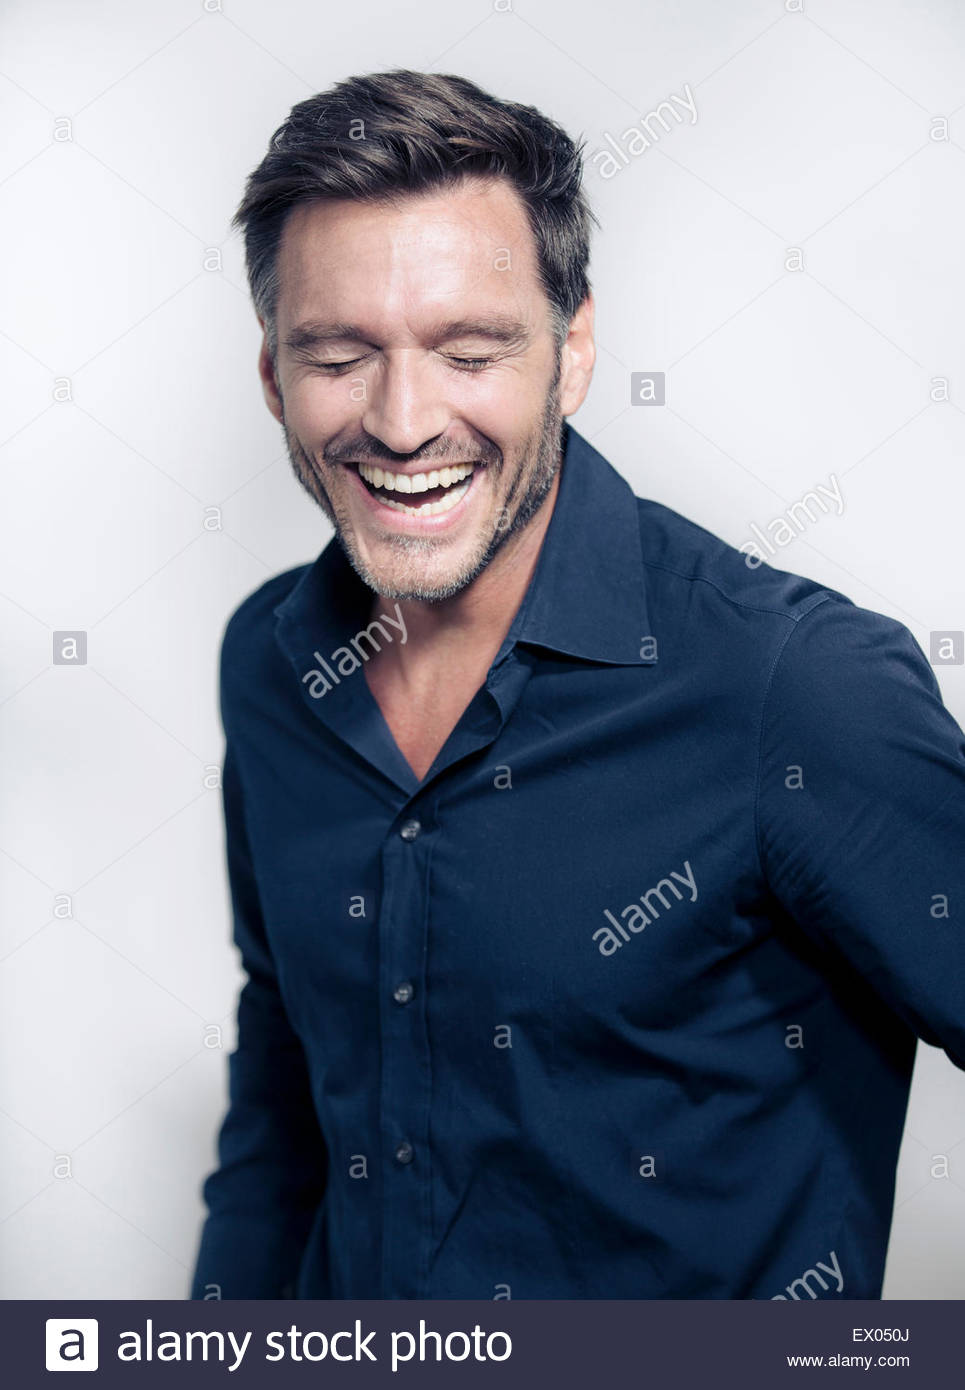 Portrait of mature man laughing - Stock Image